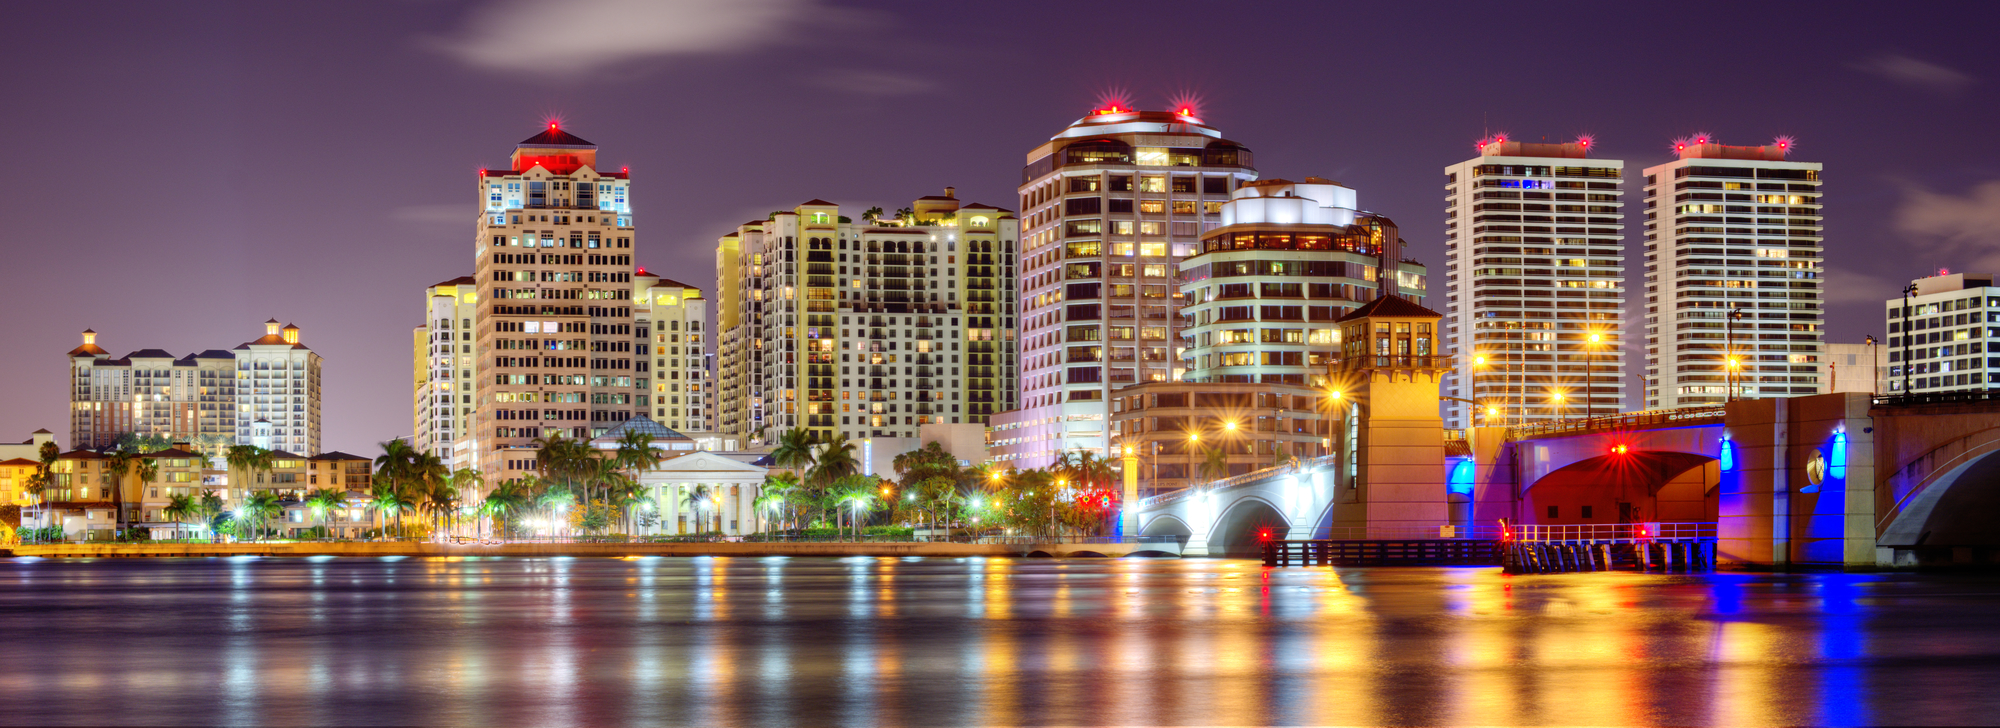 Where are the best houses for sale in palm beach florida?